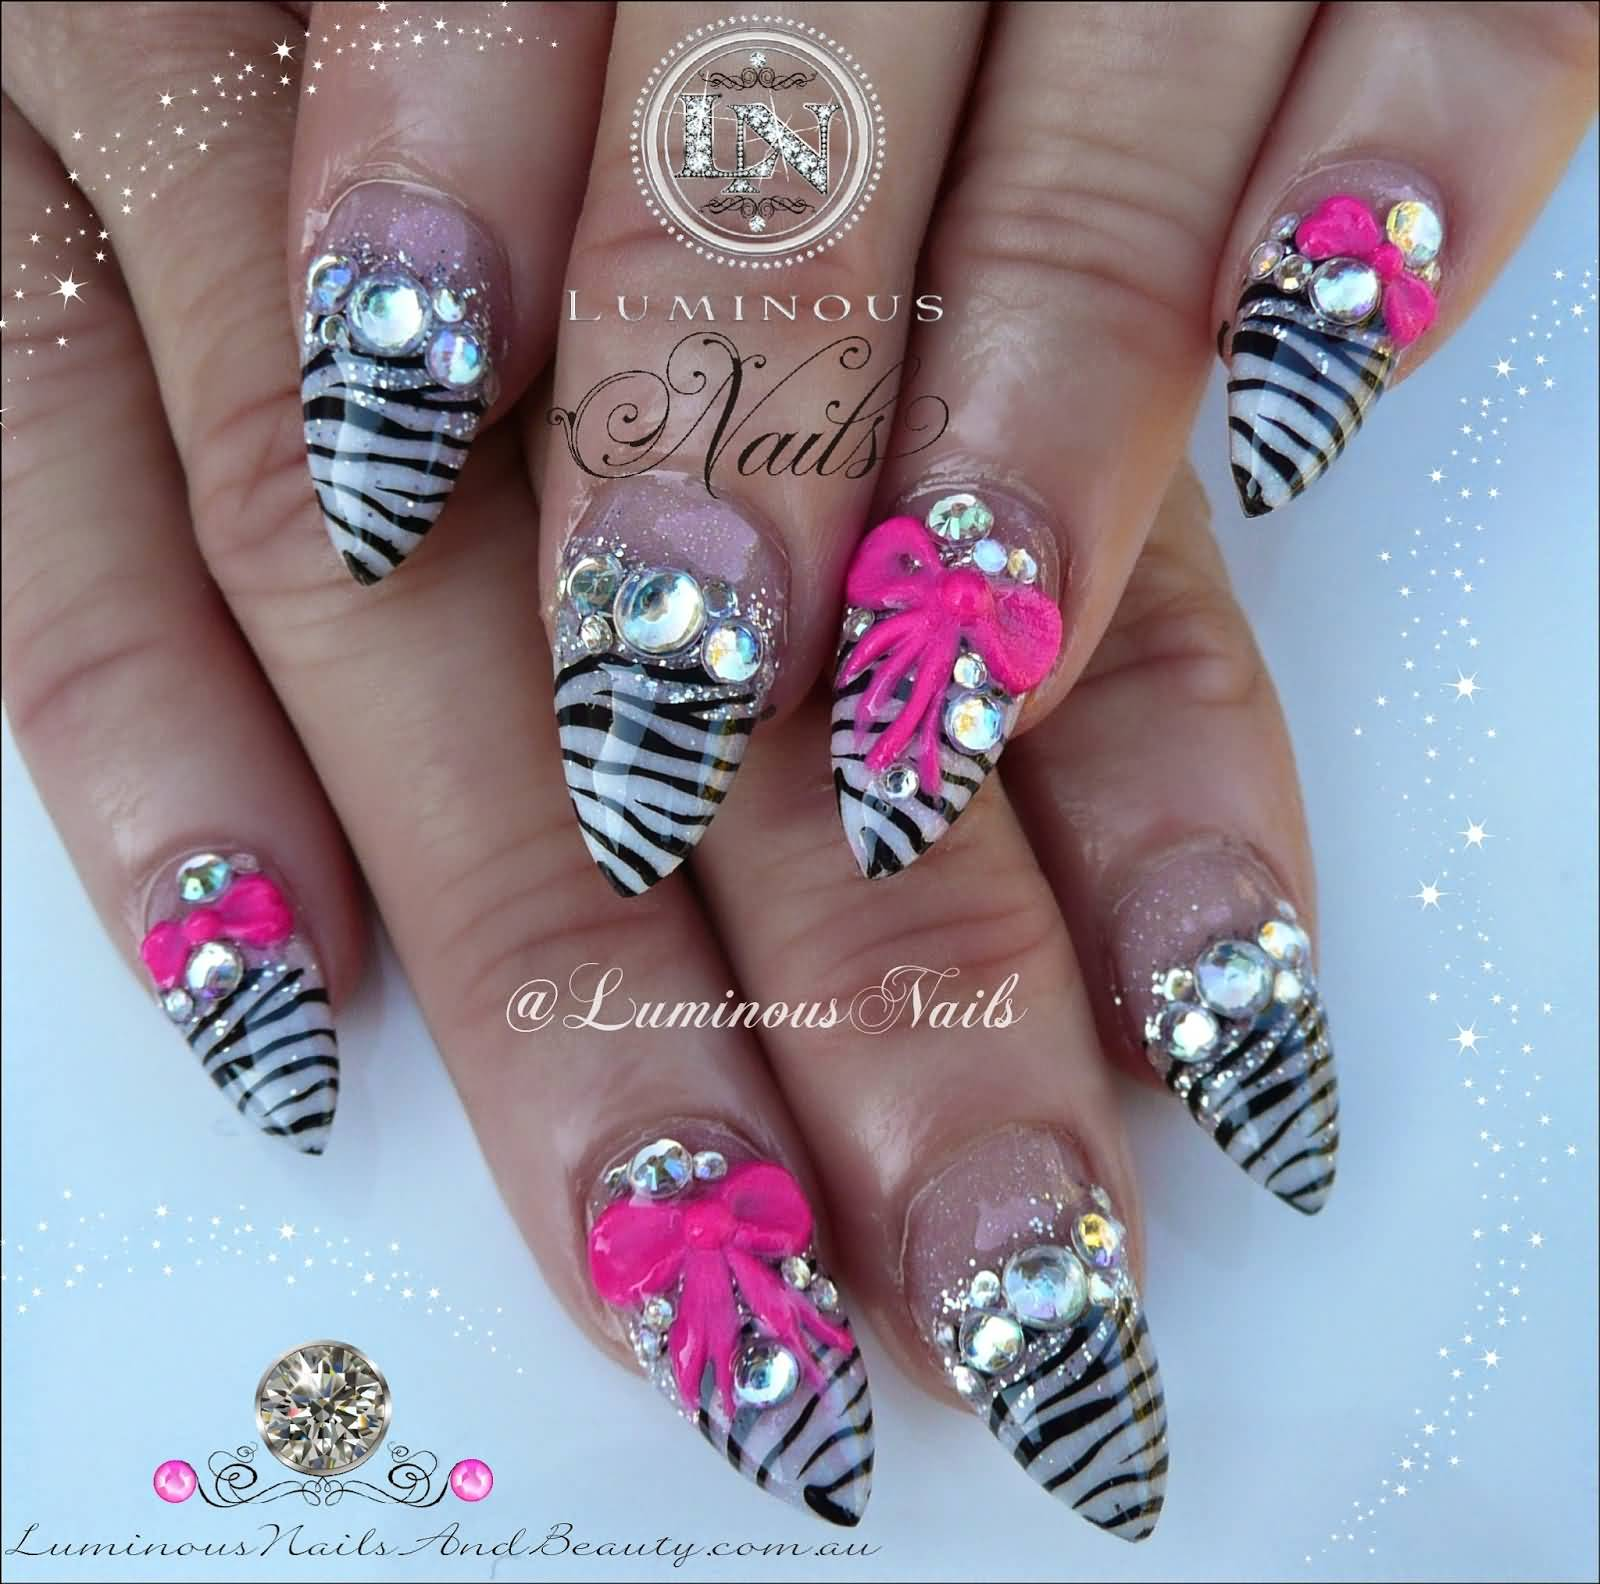 The digital dozen does childhood 3 tiger lilly memories nail art latest zebra print nail art design ideas for girls tiger lily nail art prinsesfo Gallery